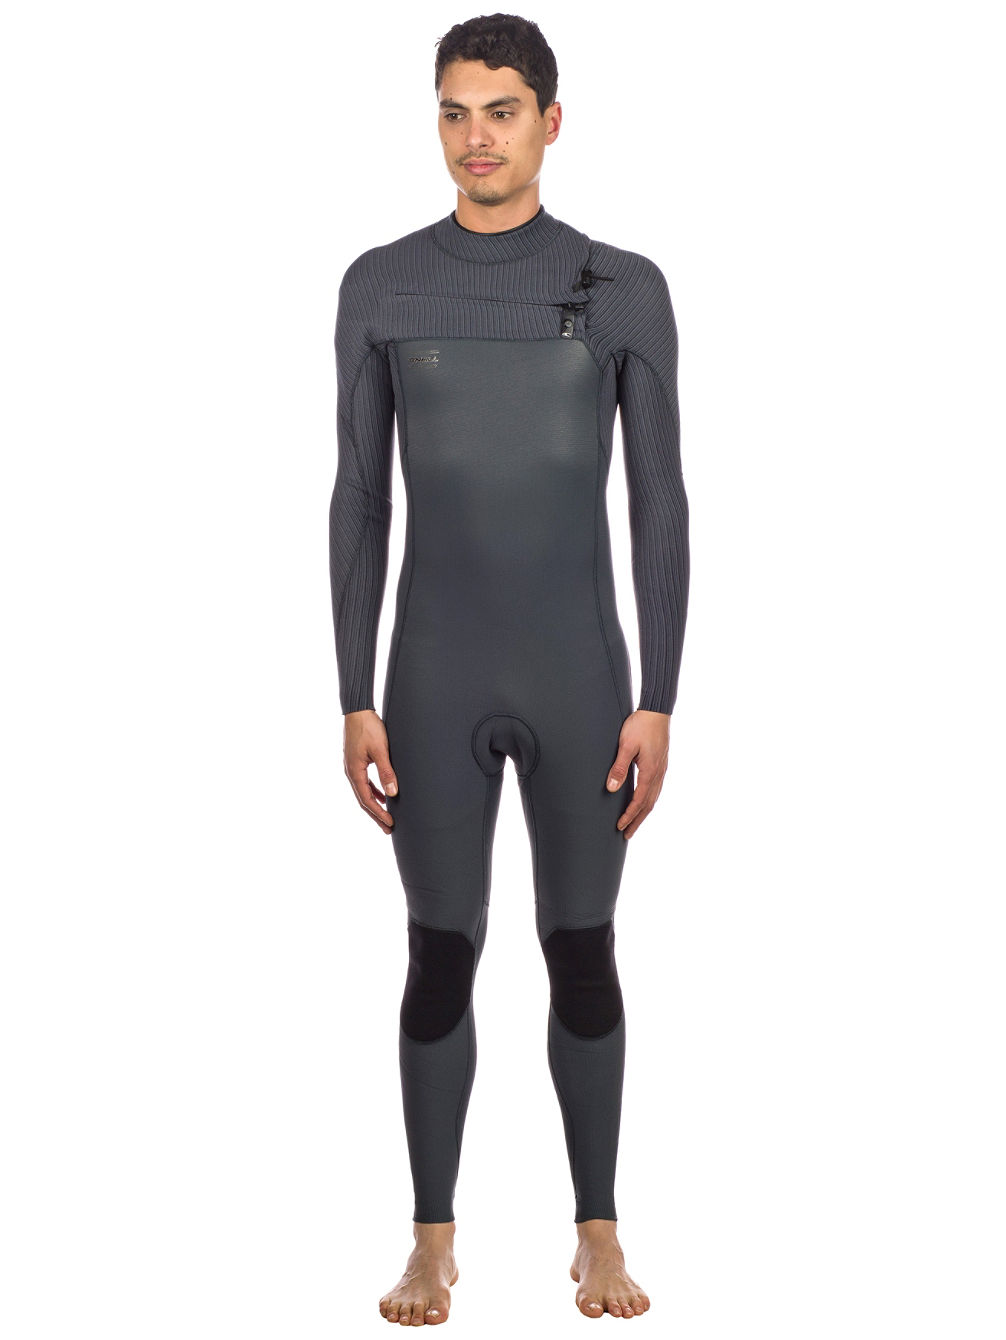 fbe58743ec Buy O'Neill Hyperfreak 3/2 Chest Zip Wetsuit online at Blue Tomato